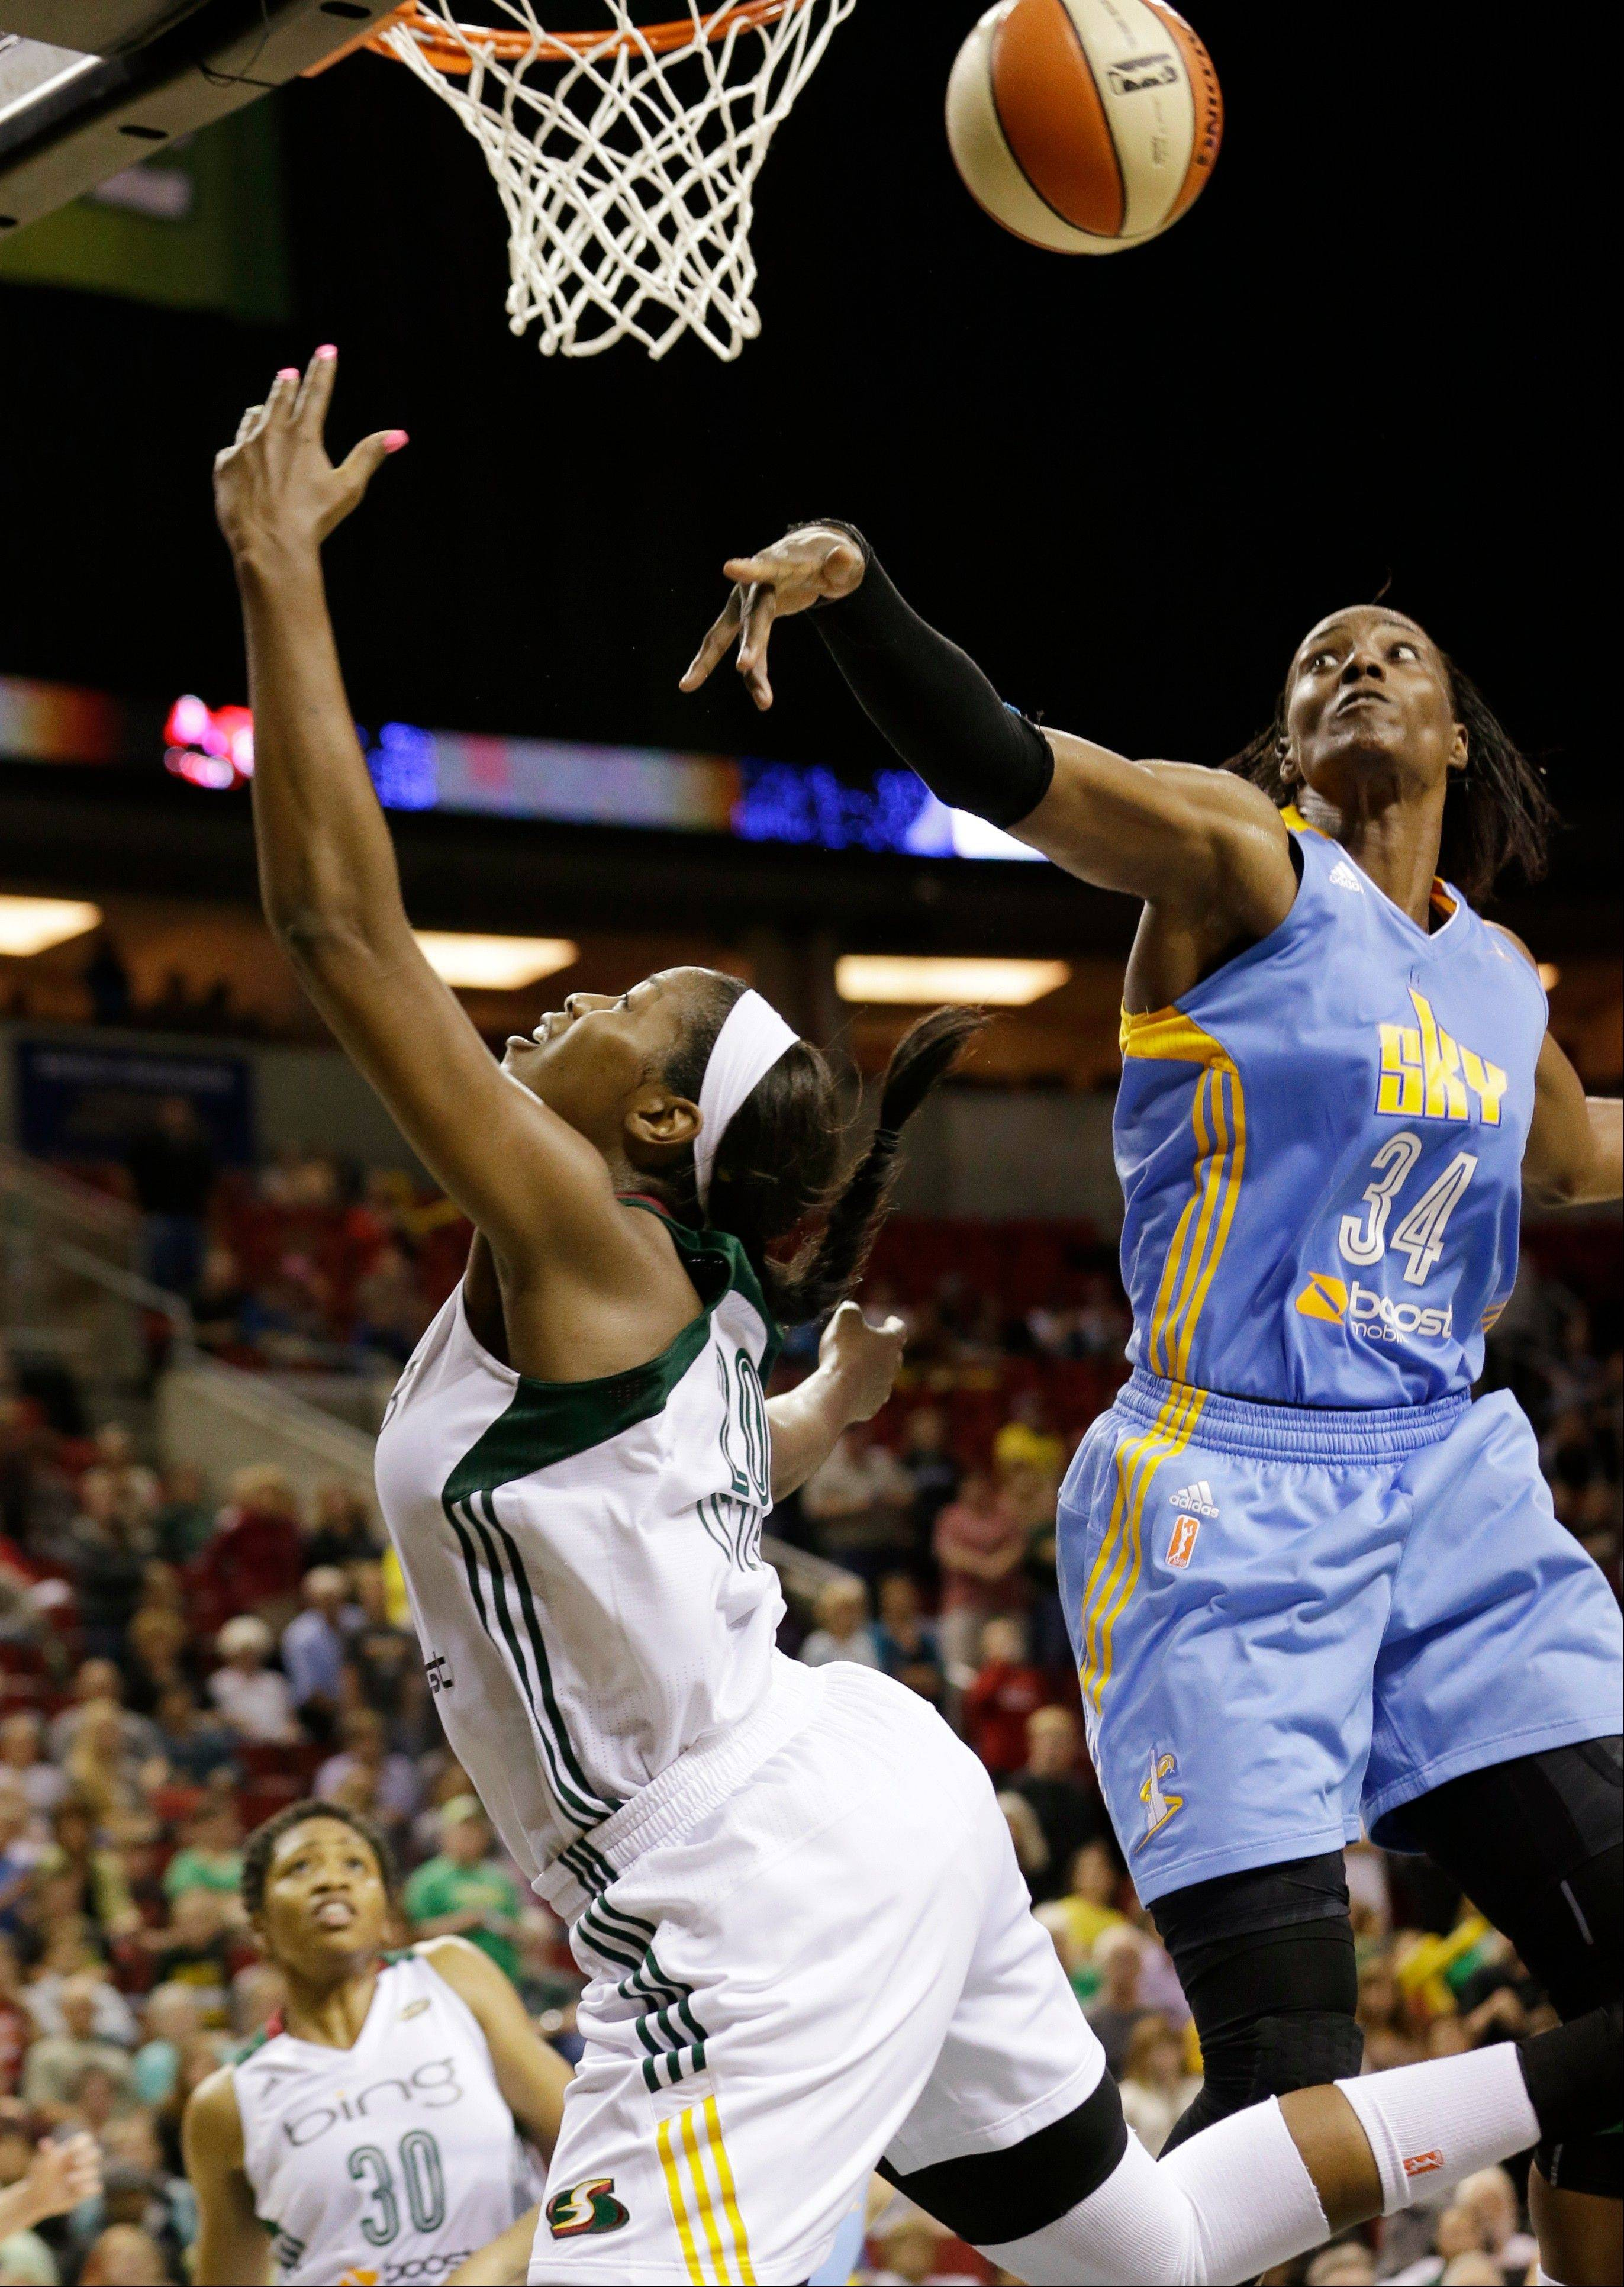 The Sky's Sylvia Fowles, right, knocks away a shot attempt by Seattle Storm's Camille Little late in the second half of game Thursday in Seattle. The Sky won 79-66.